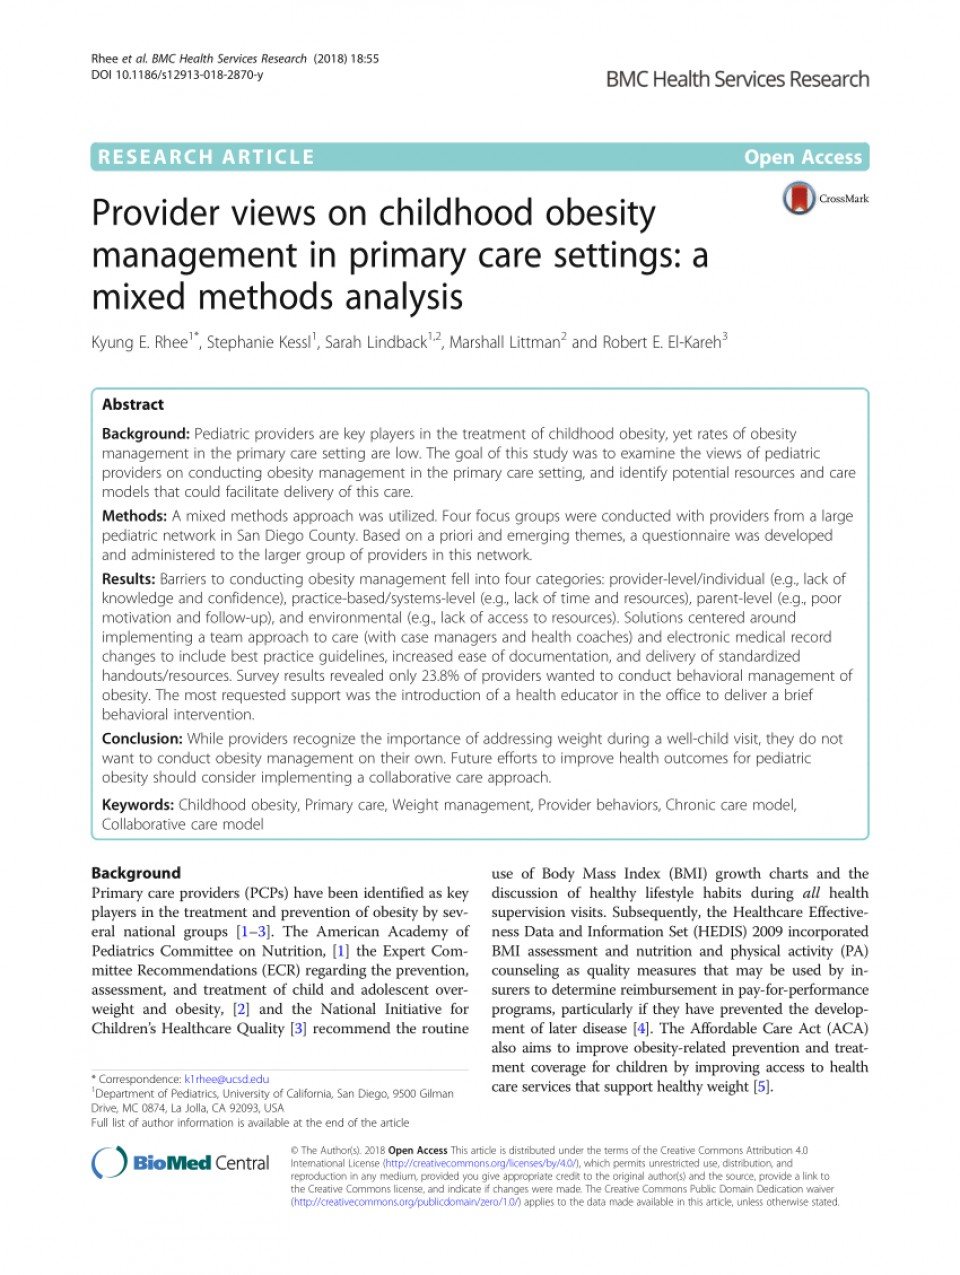 013 Largepreview Primary Research Article On Childhood Obesity Imposing 960